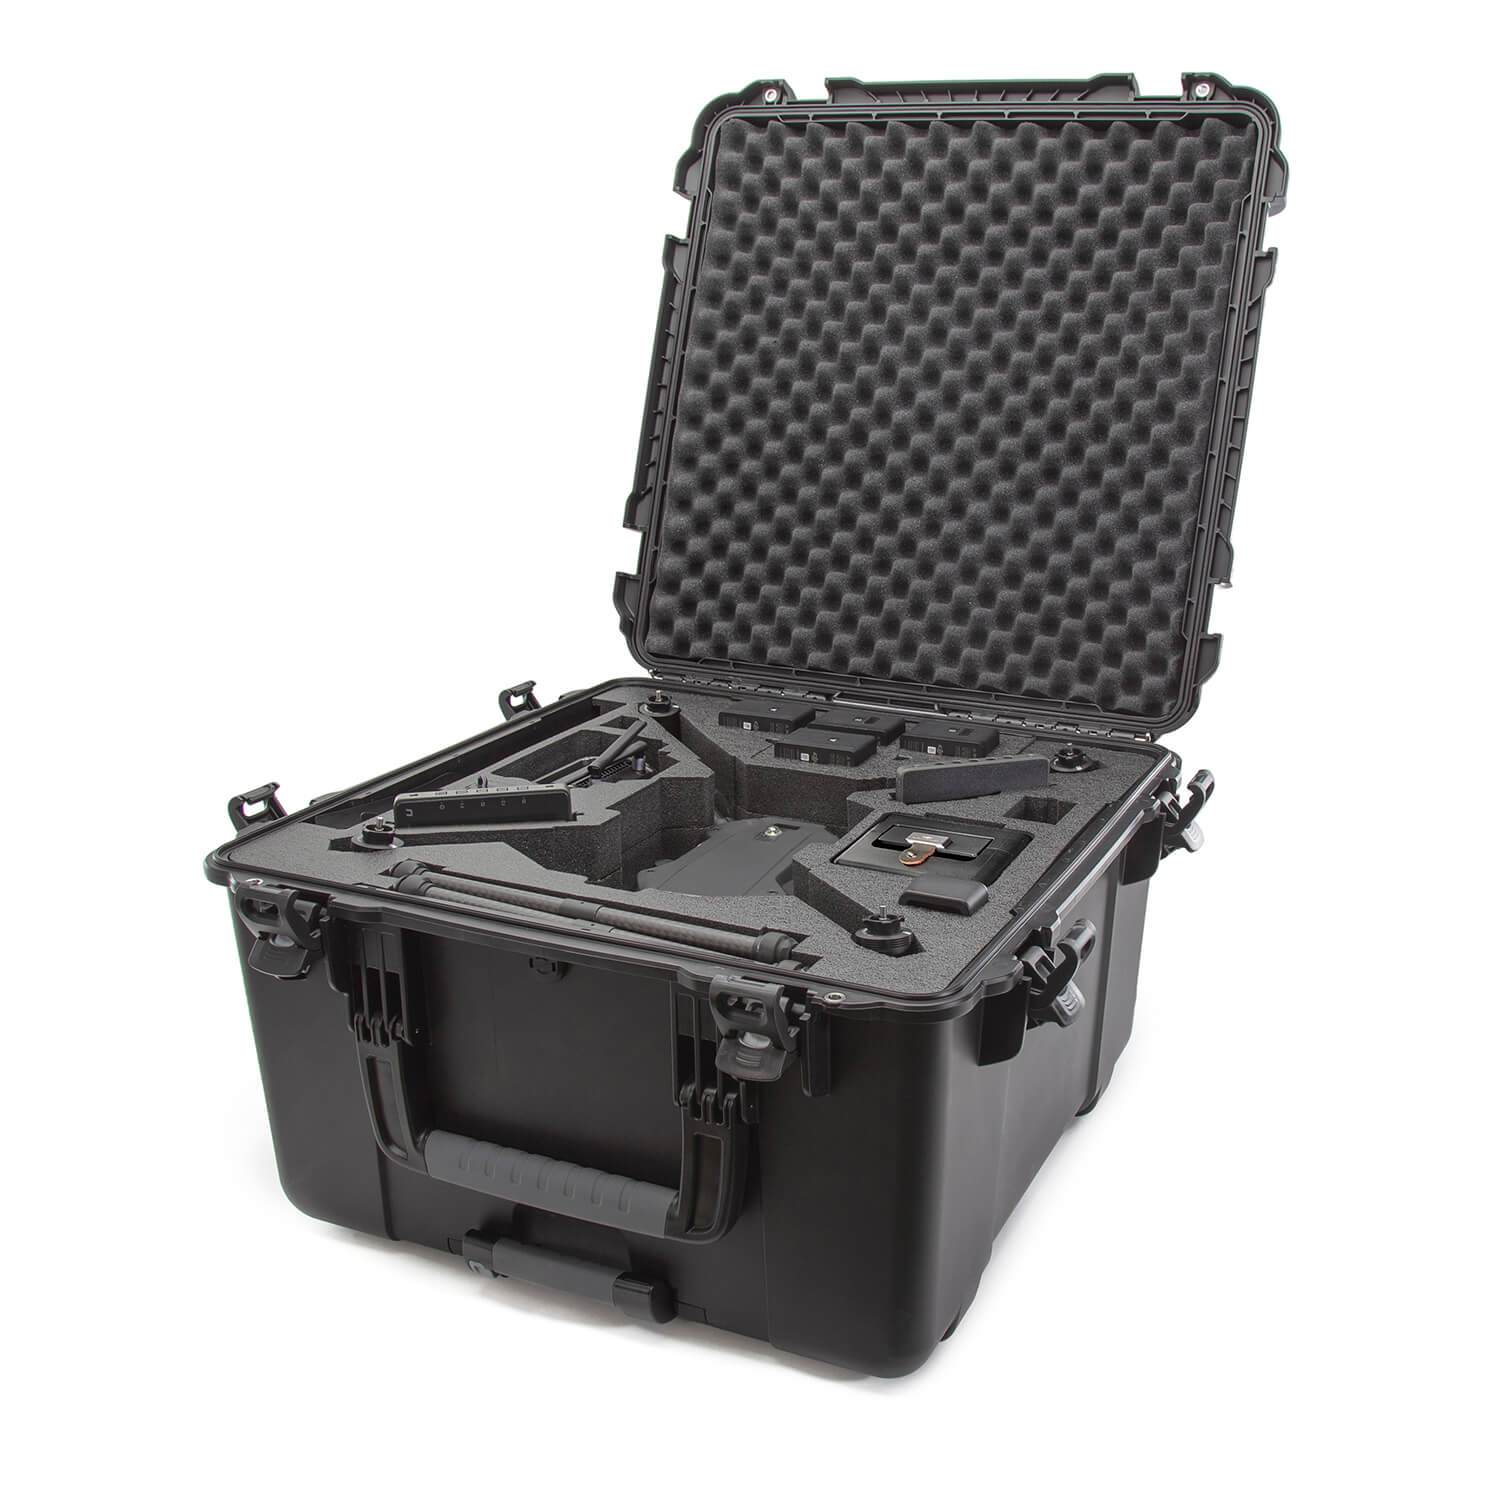 NANUK 970 FOR DJI MATRICE M200 SERIES